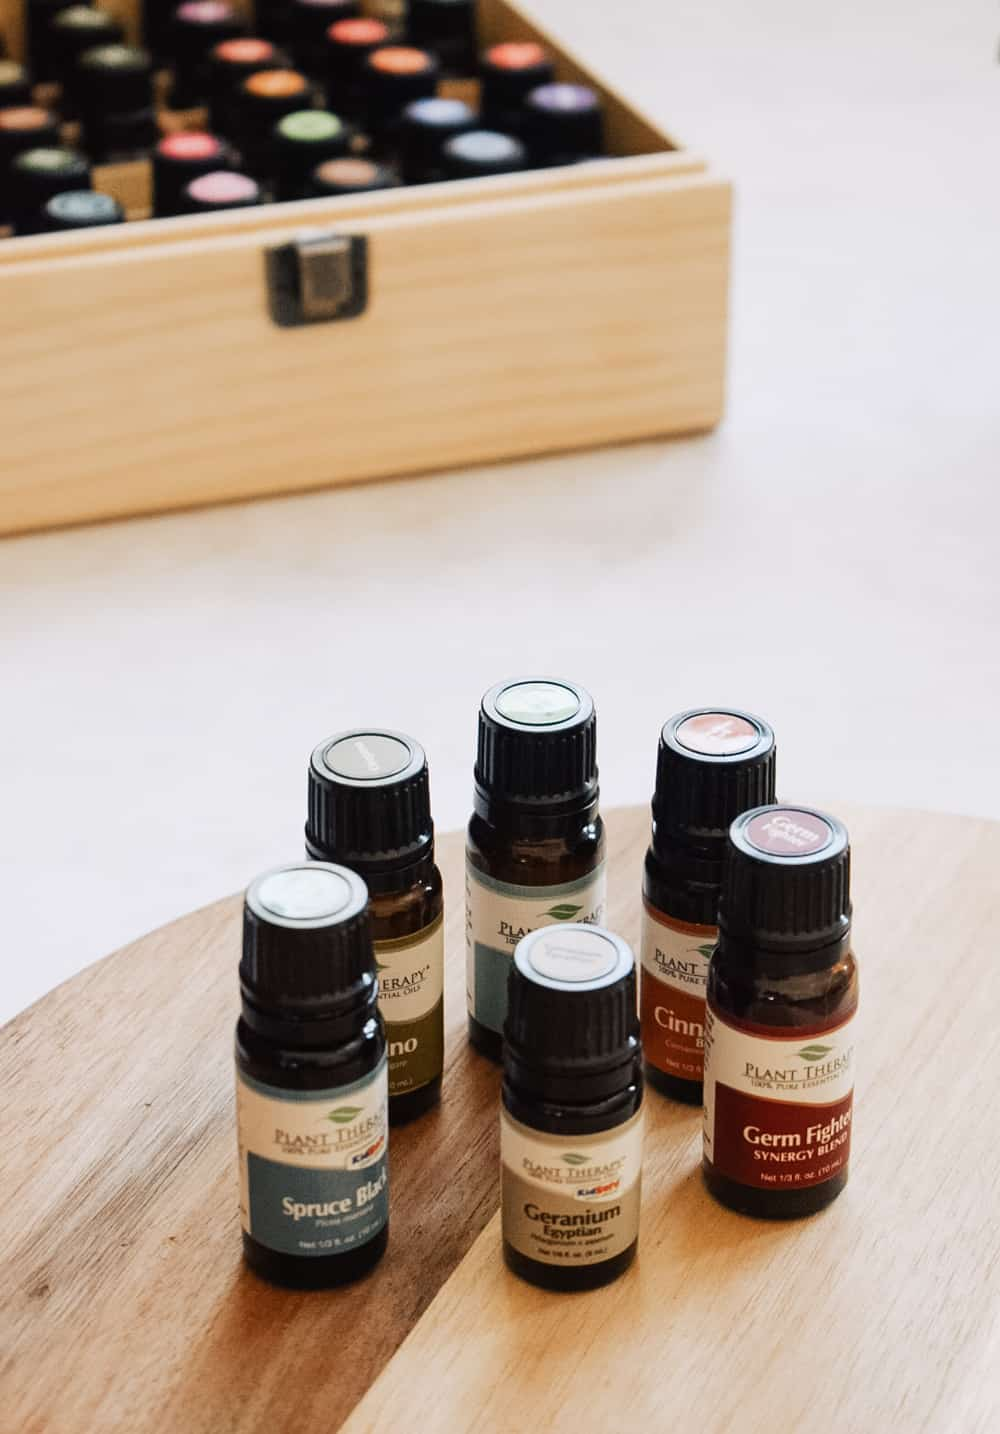 Plant therapy essential oils review lying next to essential oil storage box.